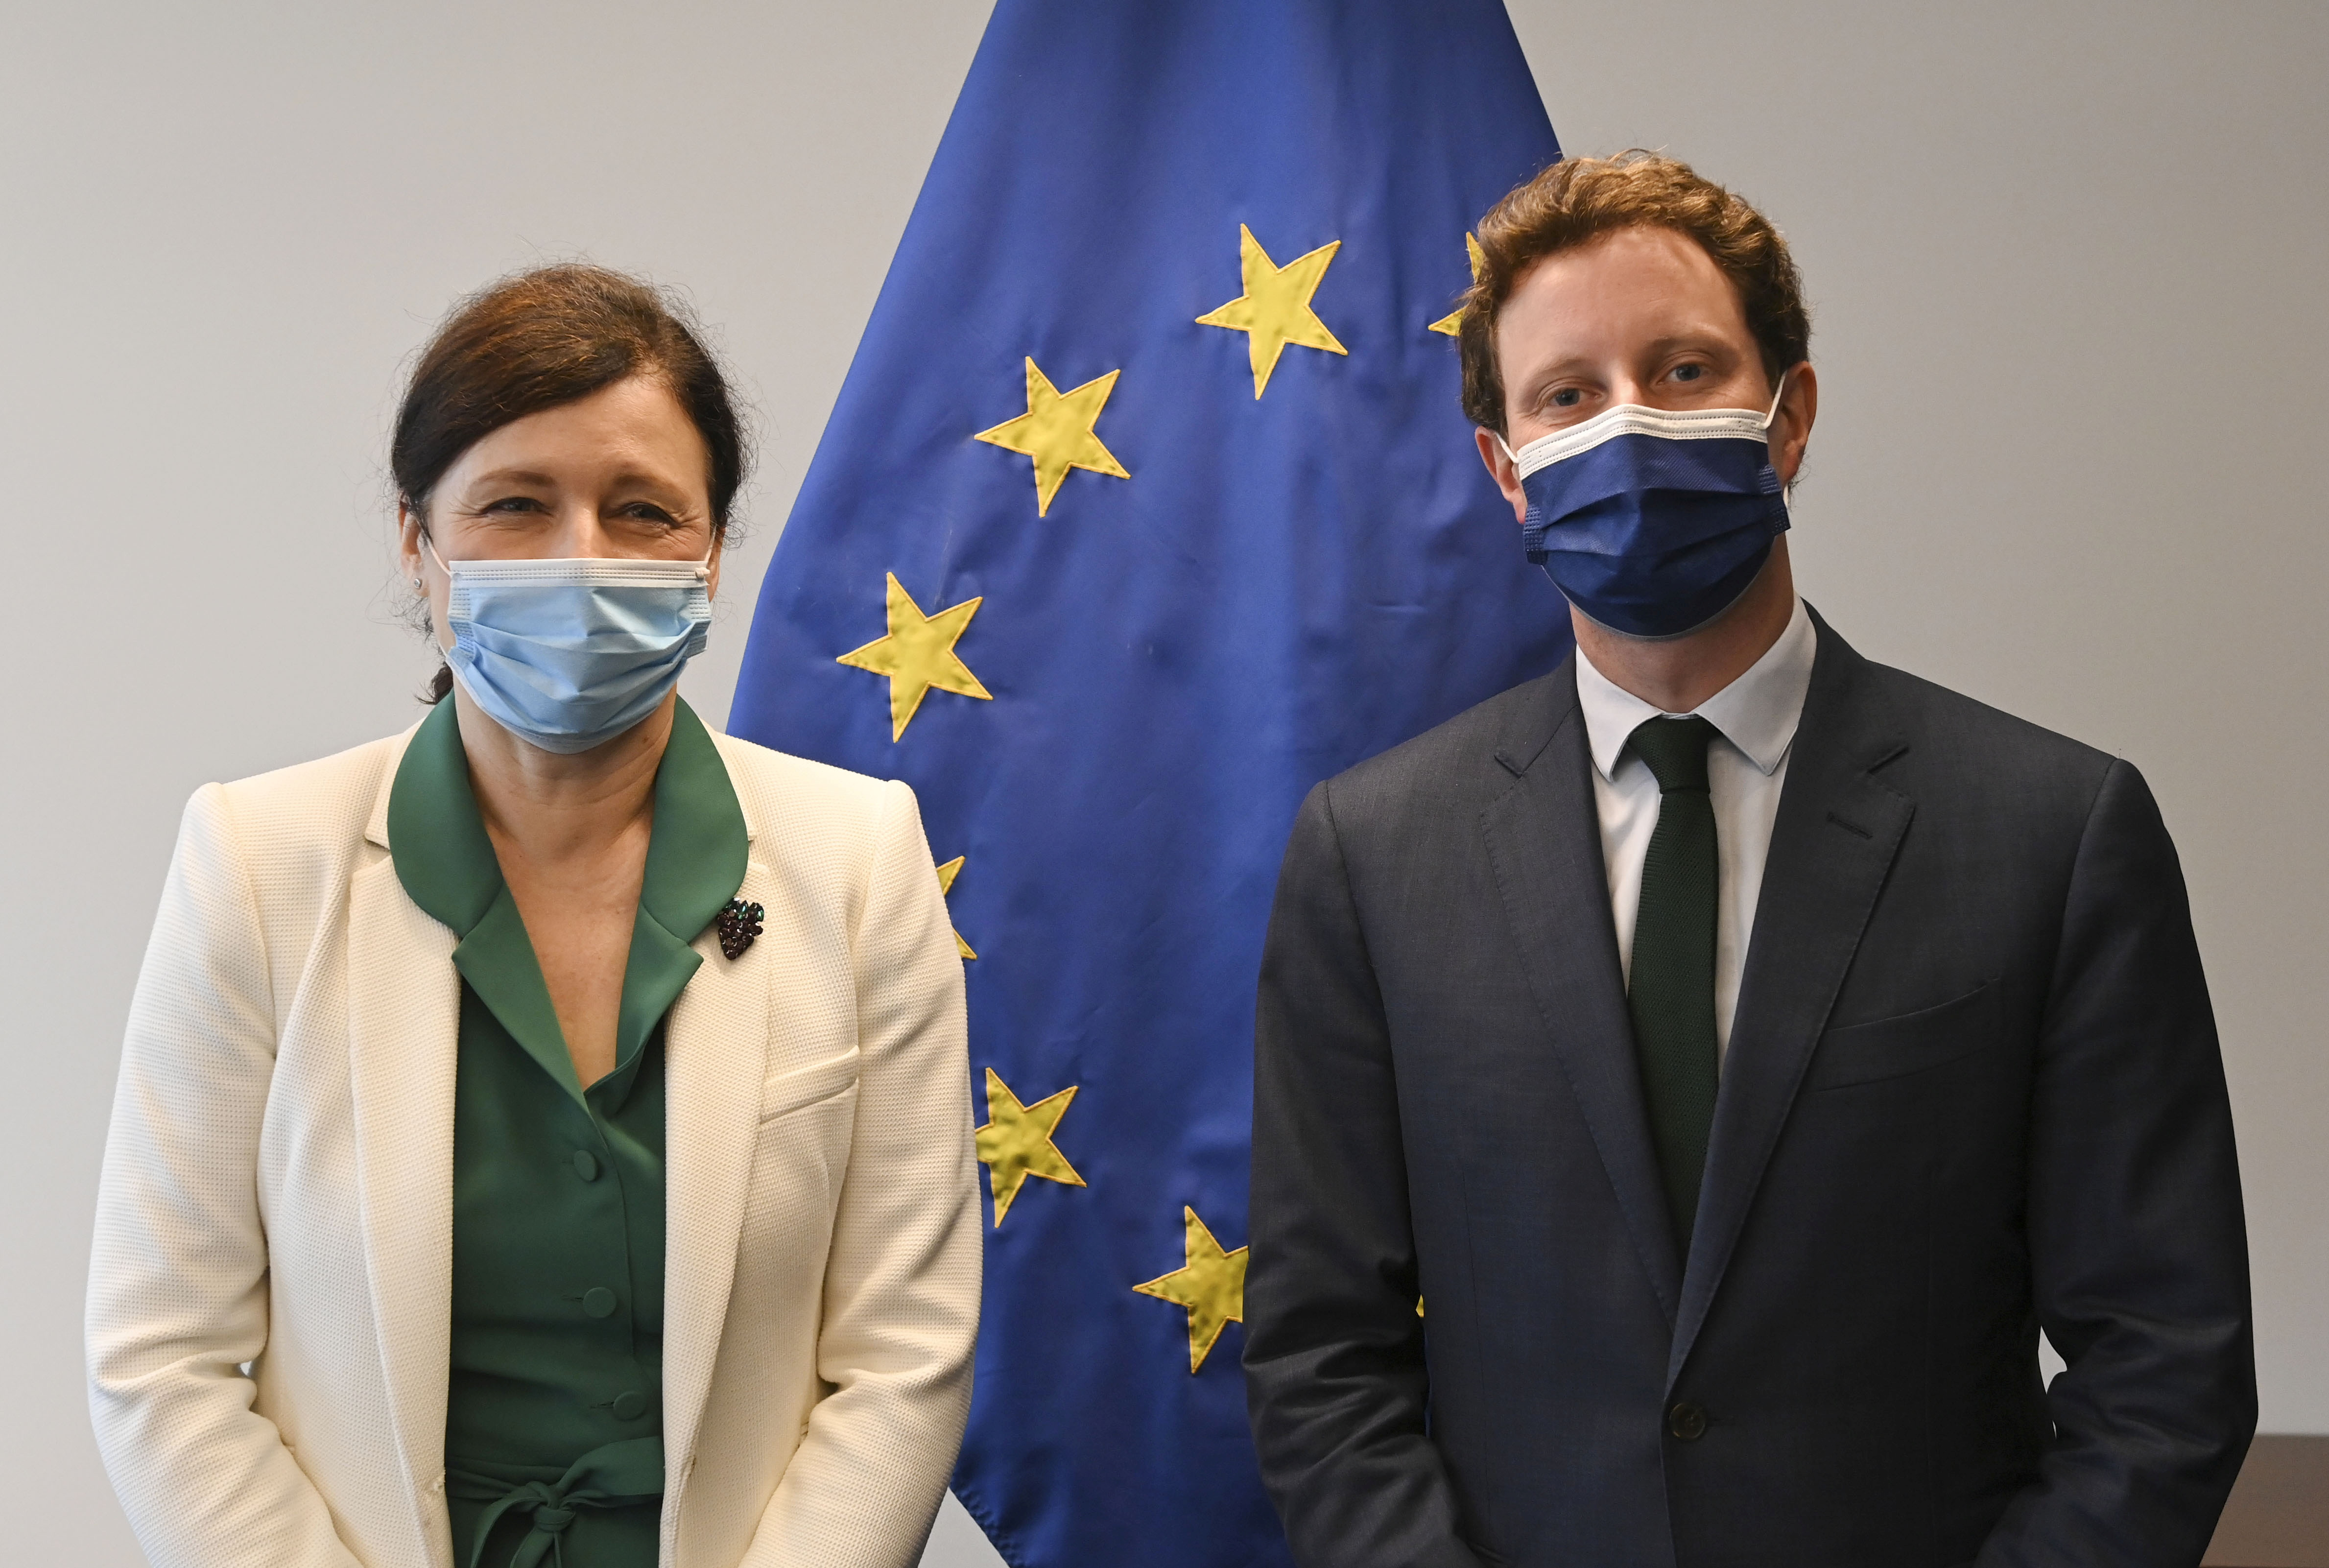 European Commission Vice-President in charge of Values and Transparency Vera Jourova and French Minister for European Affairs Clement Beaune pose for a picture before their meeting during a General Affairs Council in Luxembourg June 22, 2021. John Thys/Pool via REUTERS